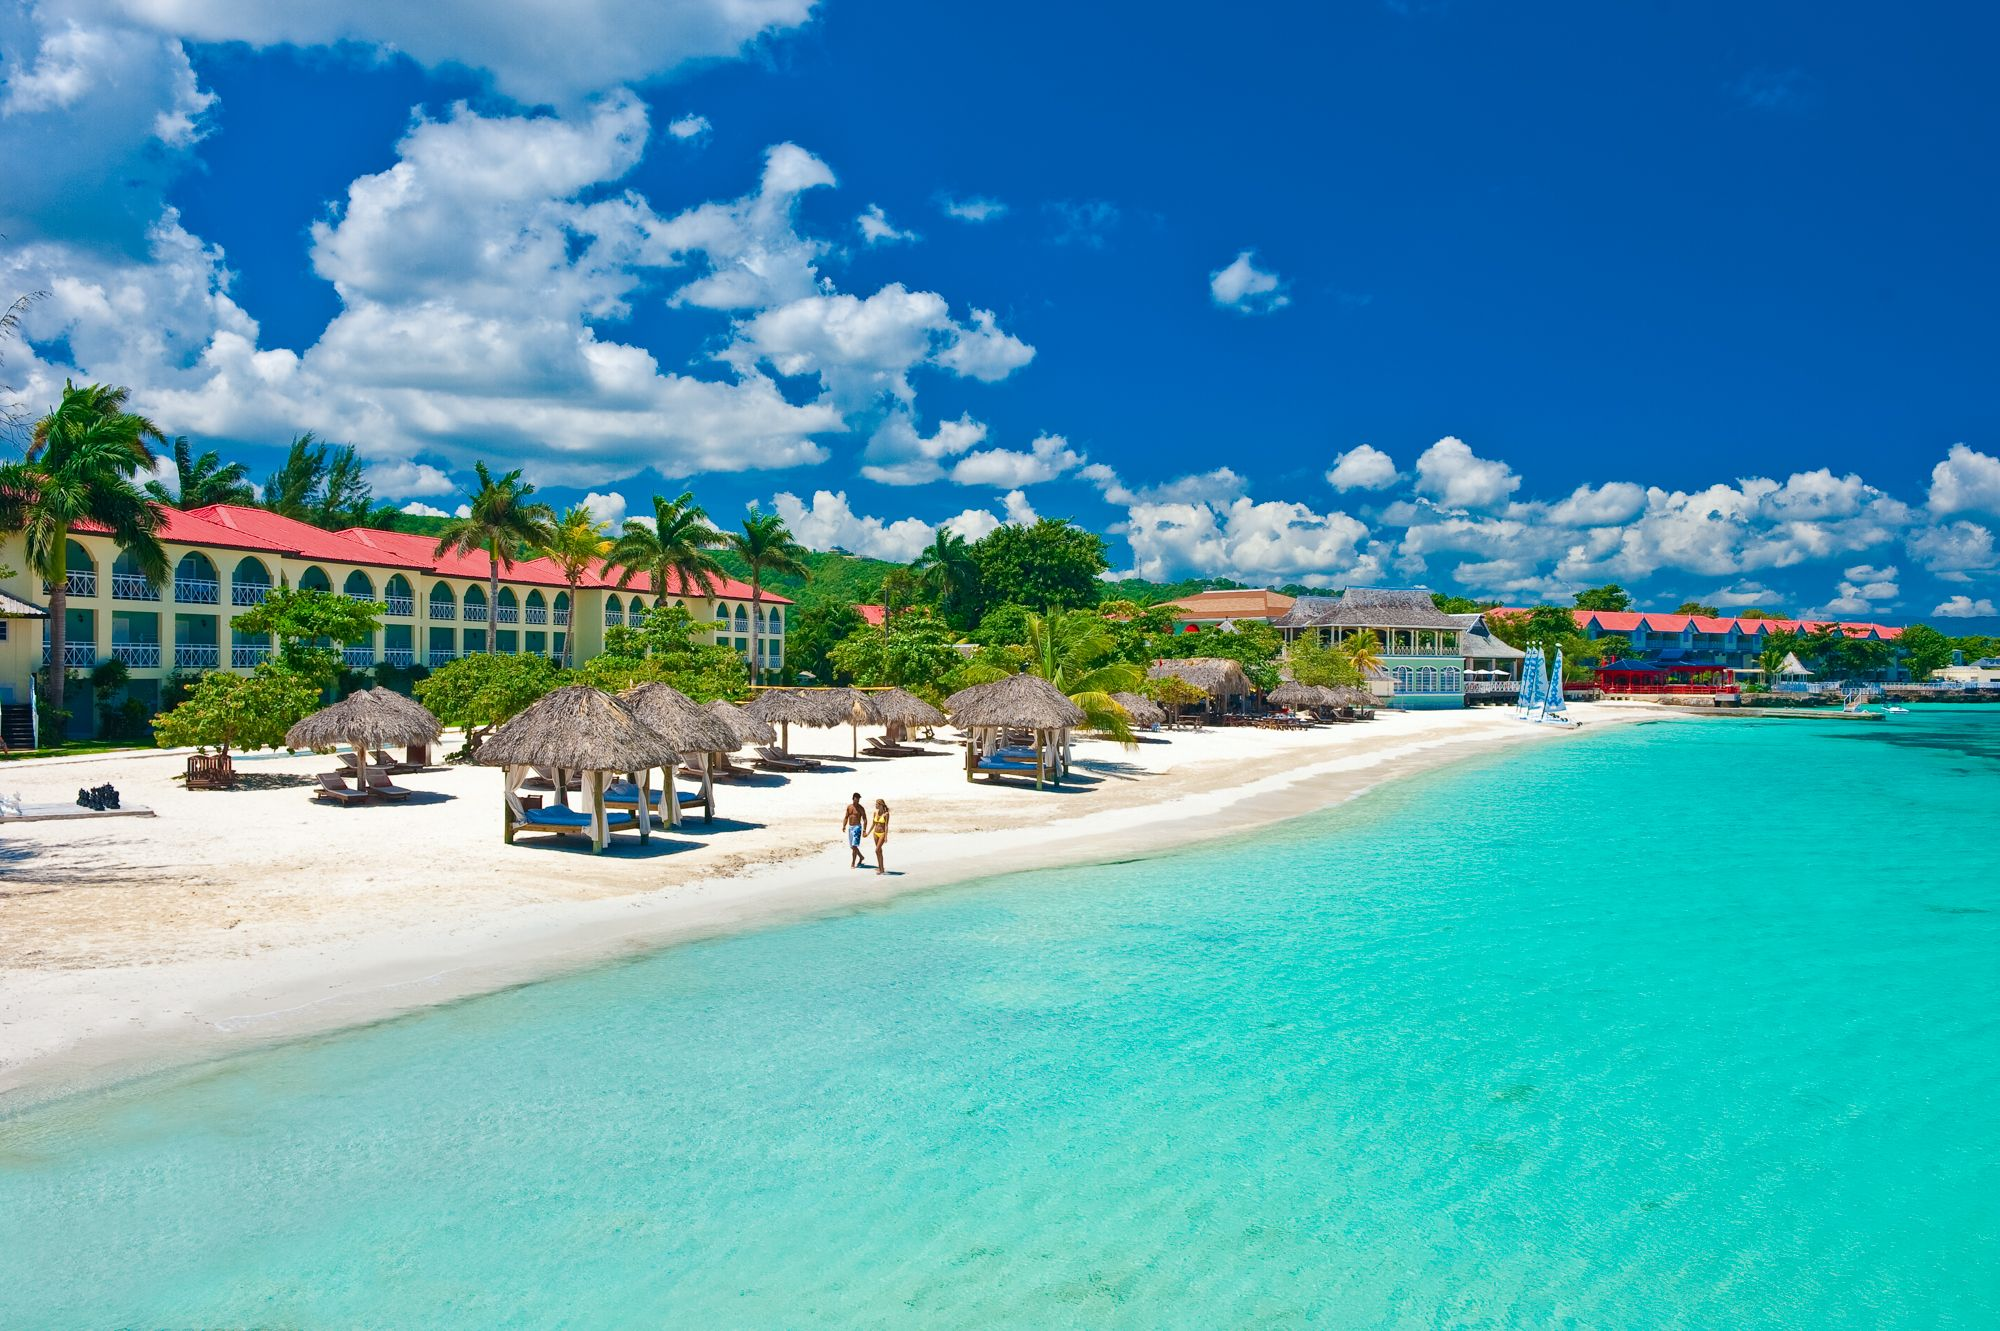 Sandals Jamaica Montego Bay